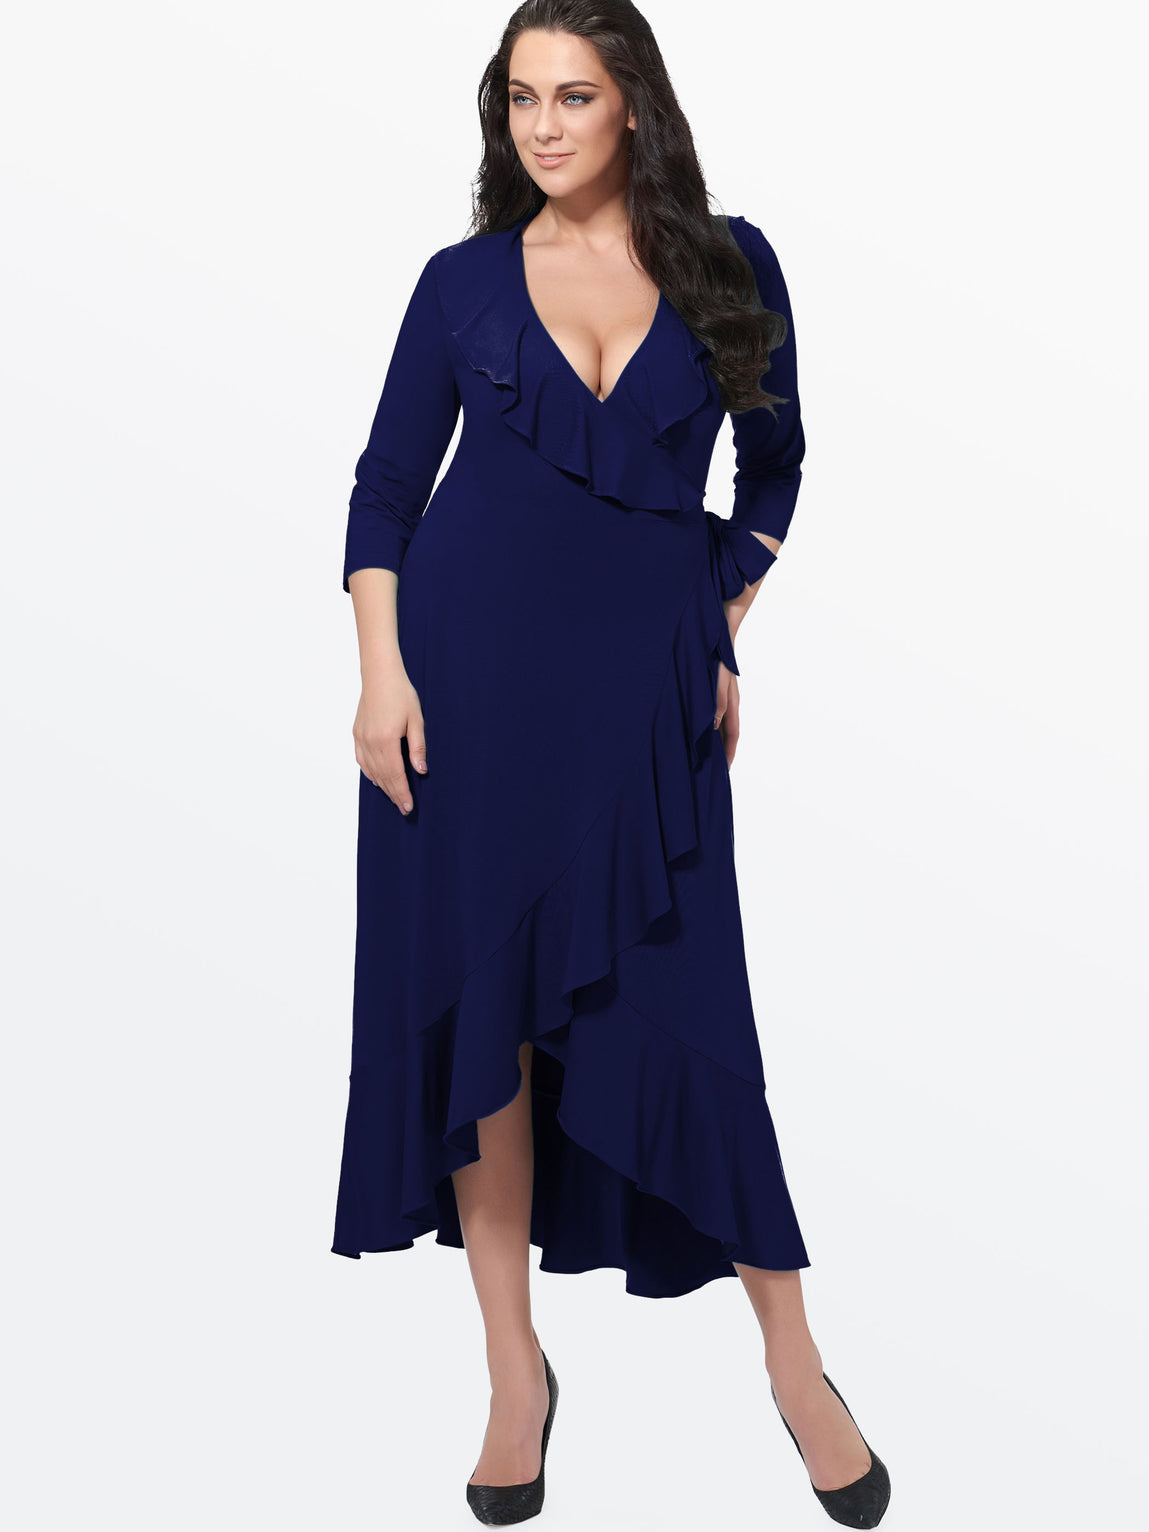 The Edge Plus Size Dresses